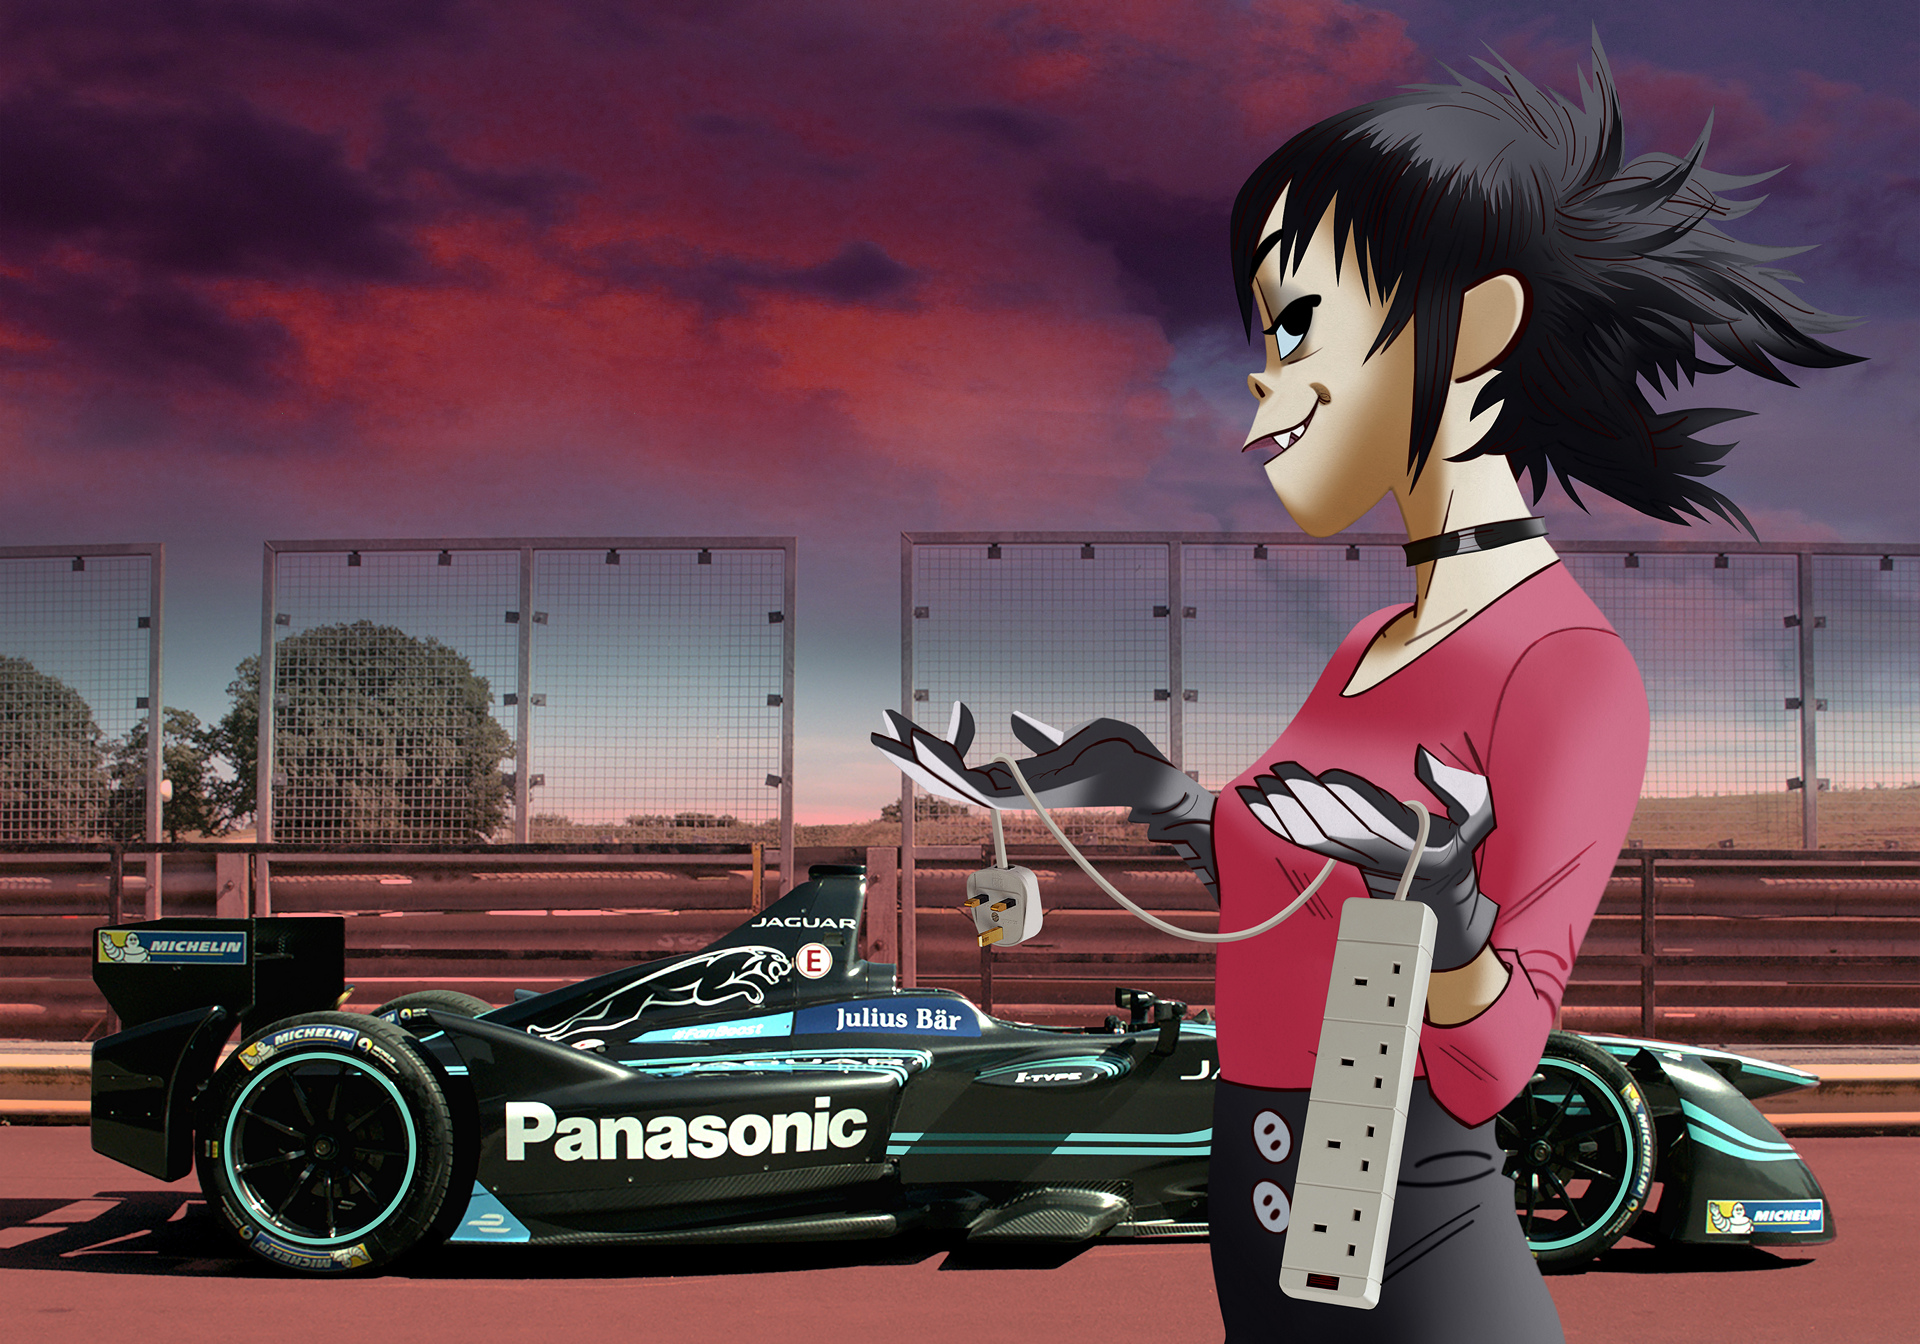 Jaguar Land Rover Announces Noodle from British Band Gorillaz as Global Ambassador © Tata Group